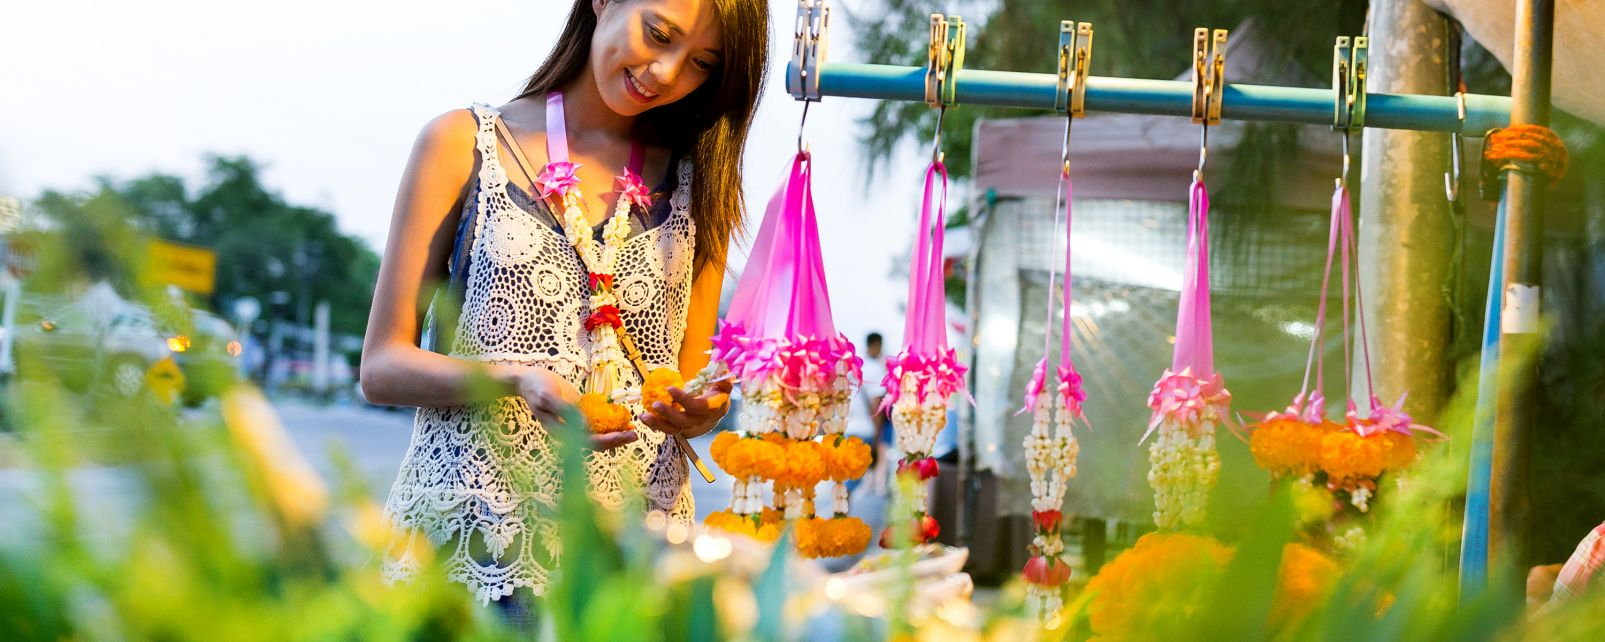 The flower markets, Thailand, Pak Khlong Talat, Arts and culture, Bangkok, Thailand